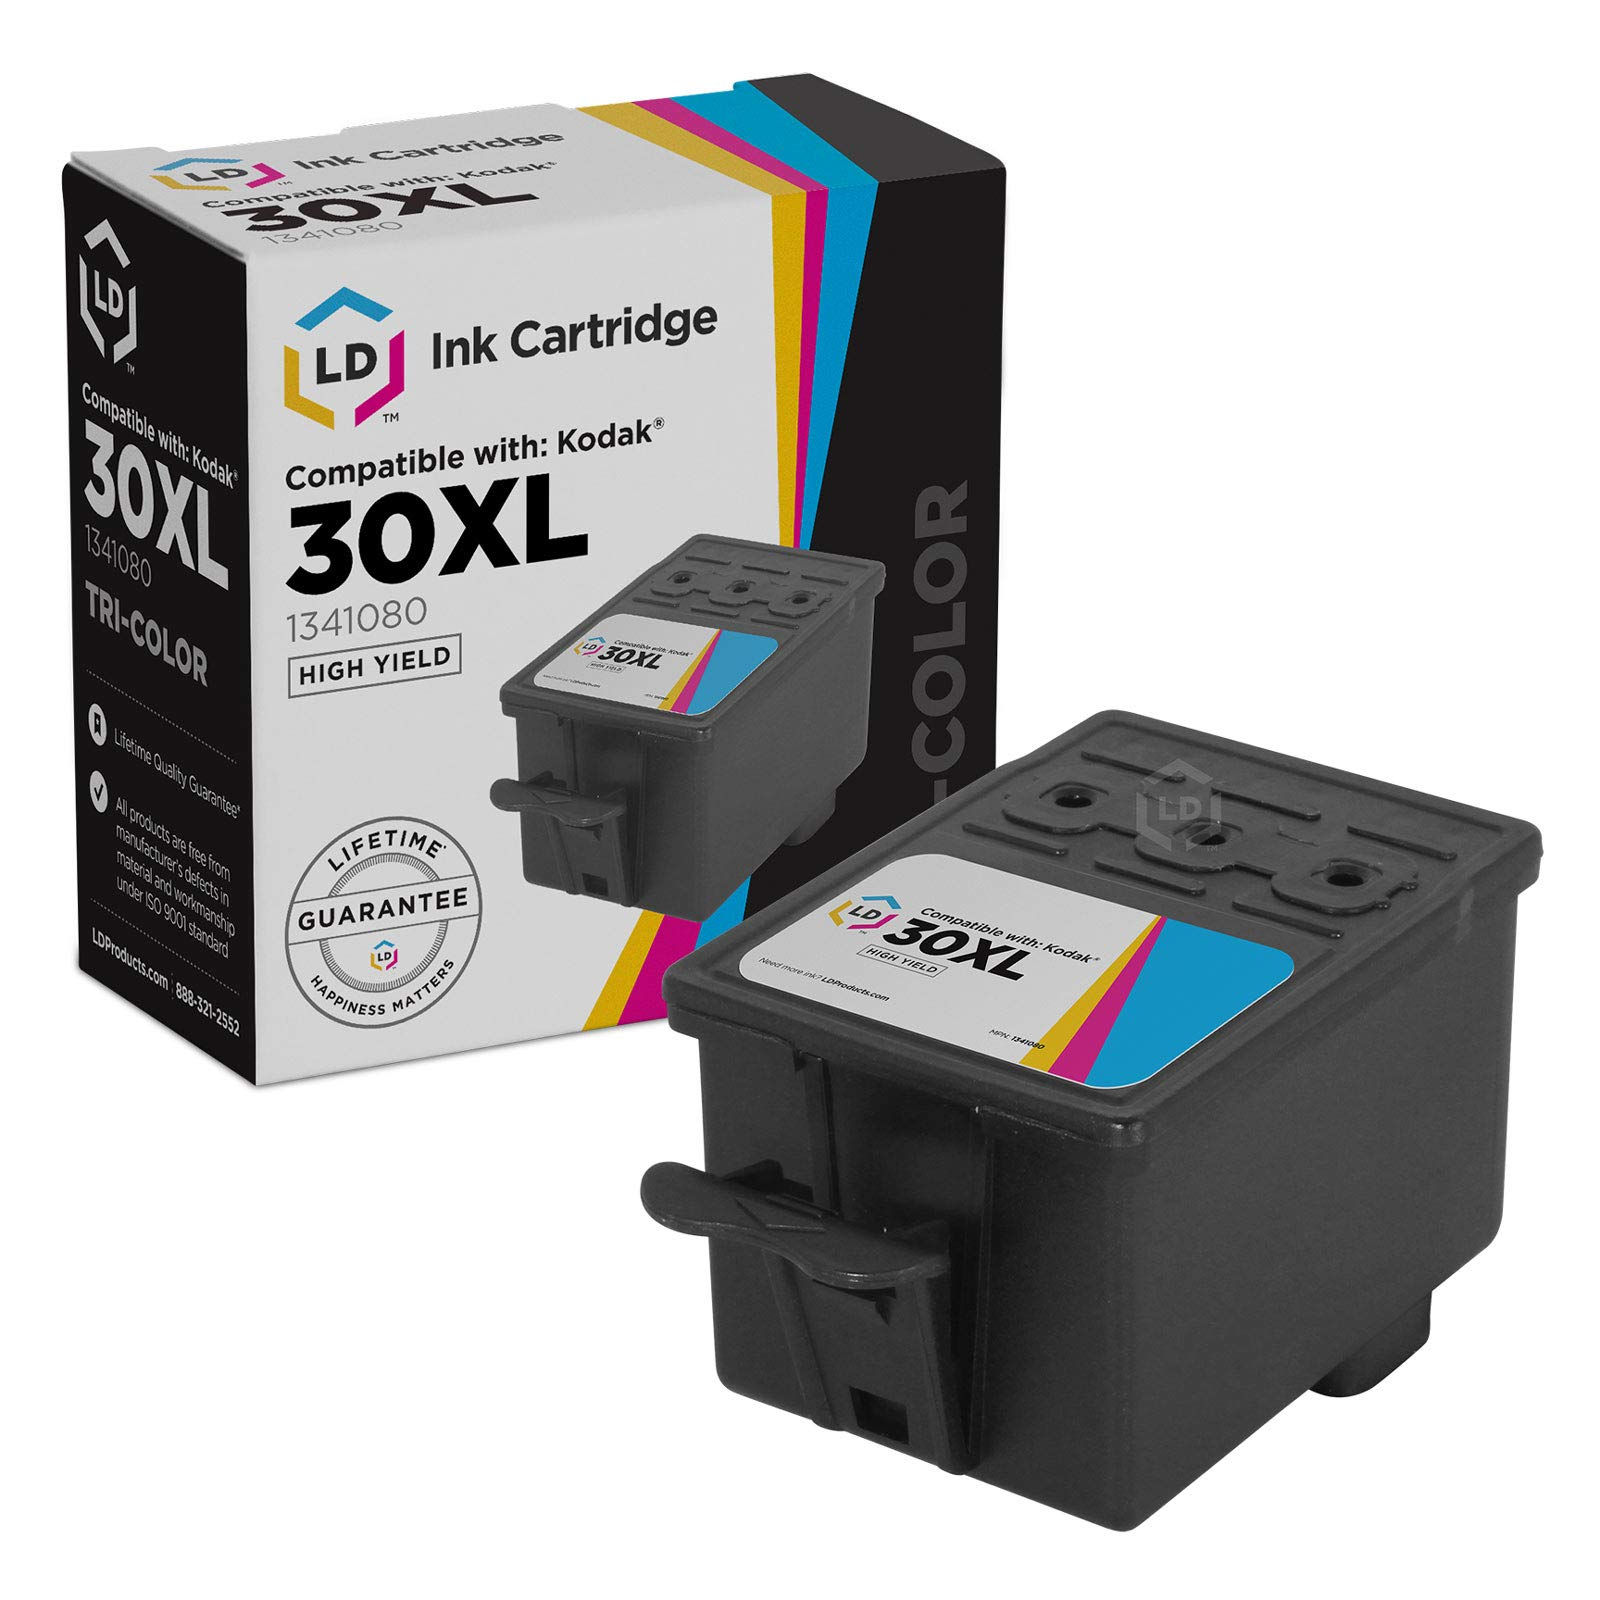 LD Compatible Ink Cartridge Replacement for Kodak 30XL 1341080 High Yield (Color)